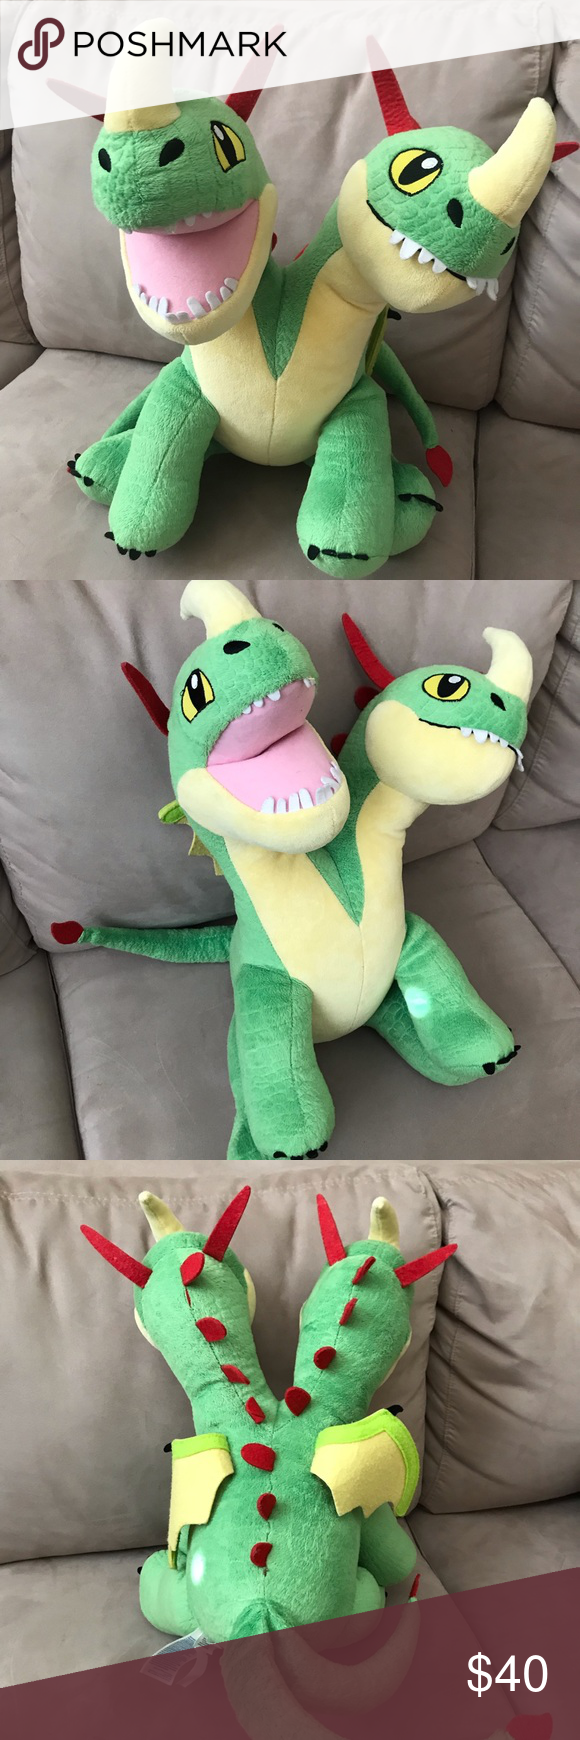 How To Train Your Dragon 2 Plush In 2020 How Train Your Dragon How To Train Your Dragon How To Train Your